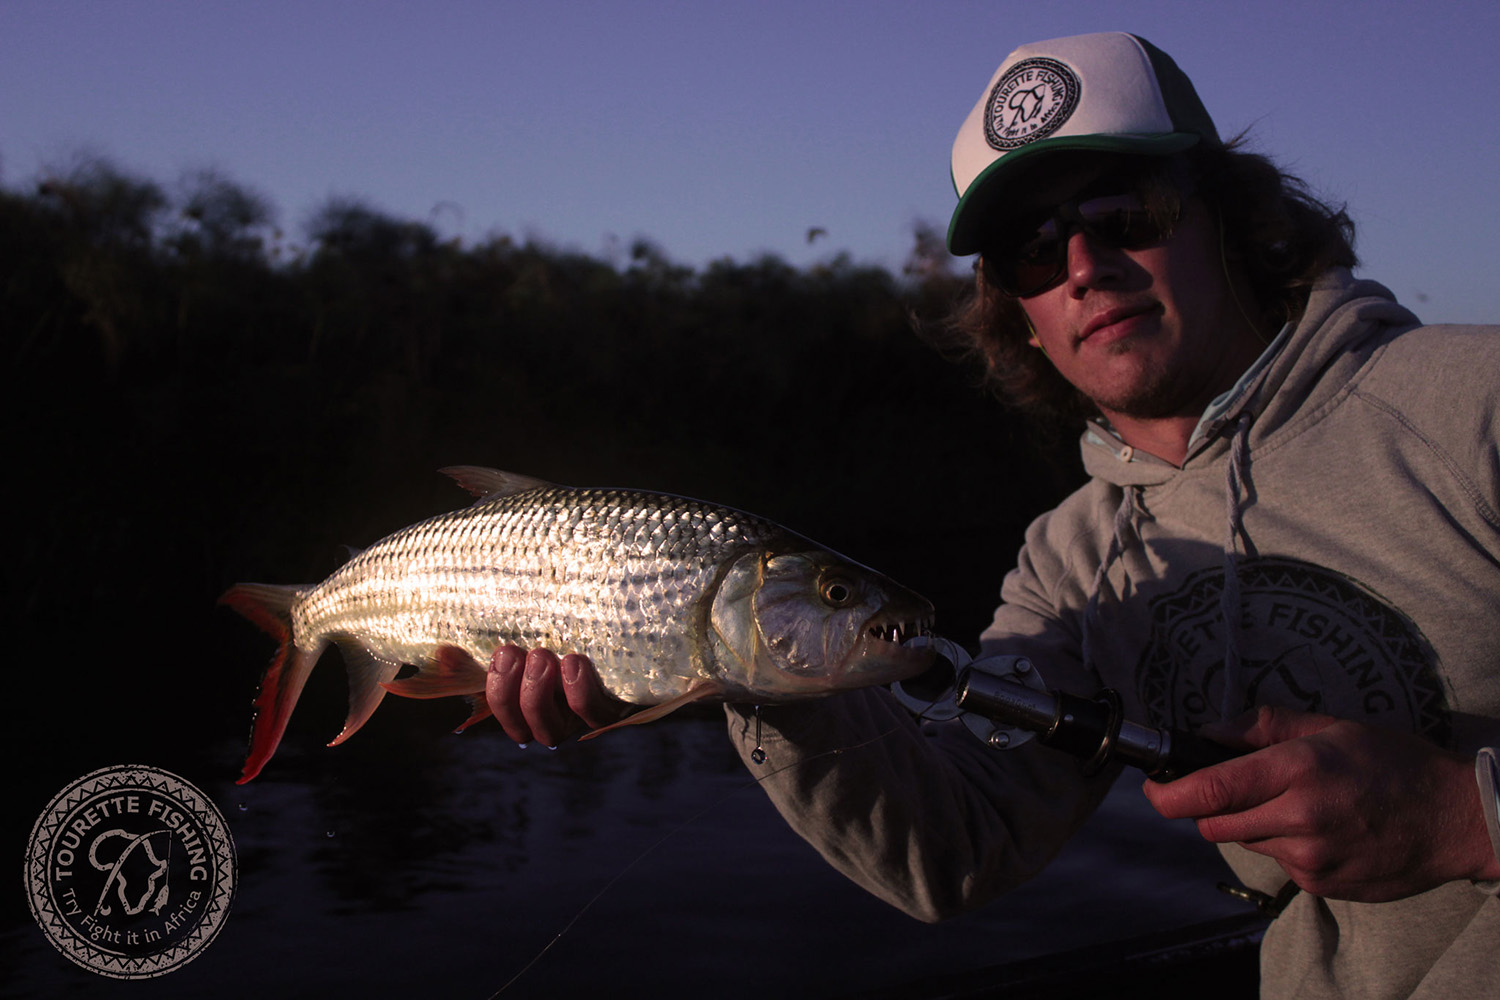 okavango-barbel-run-tigerfish-season-2016-pre-season-blog-tourette-fishing-blog-johan